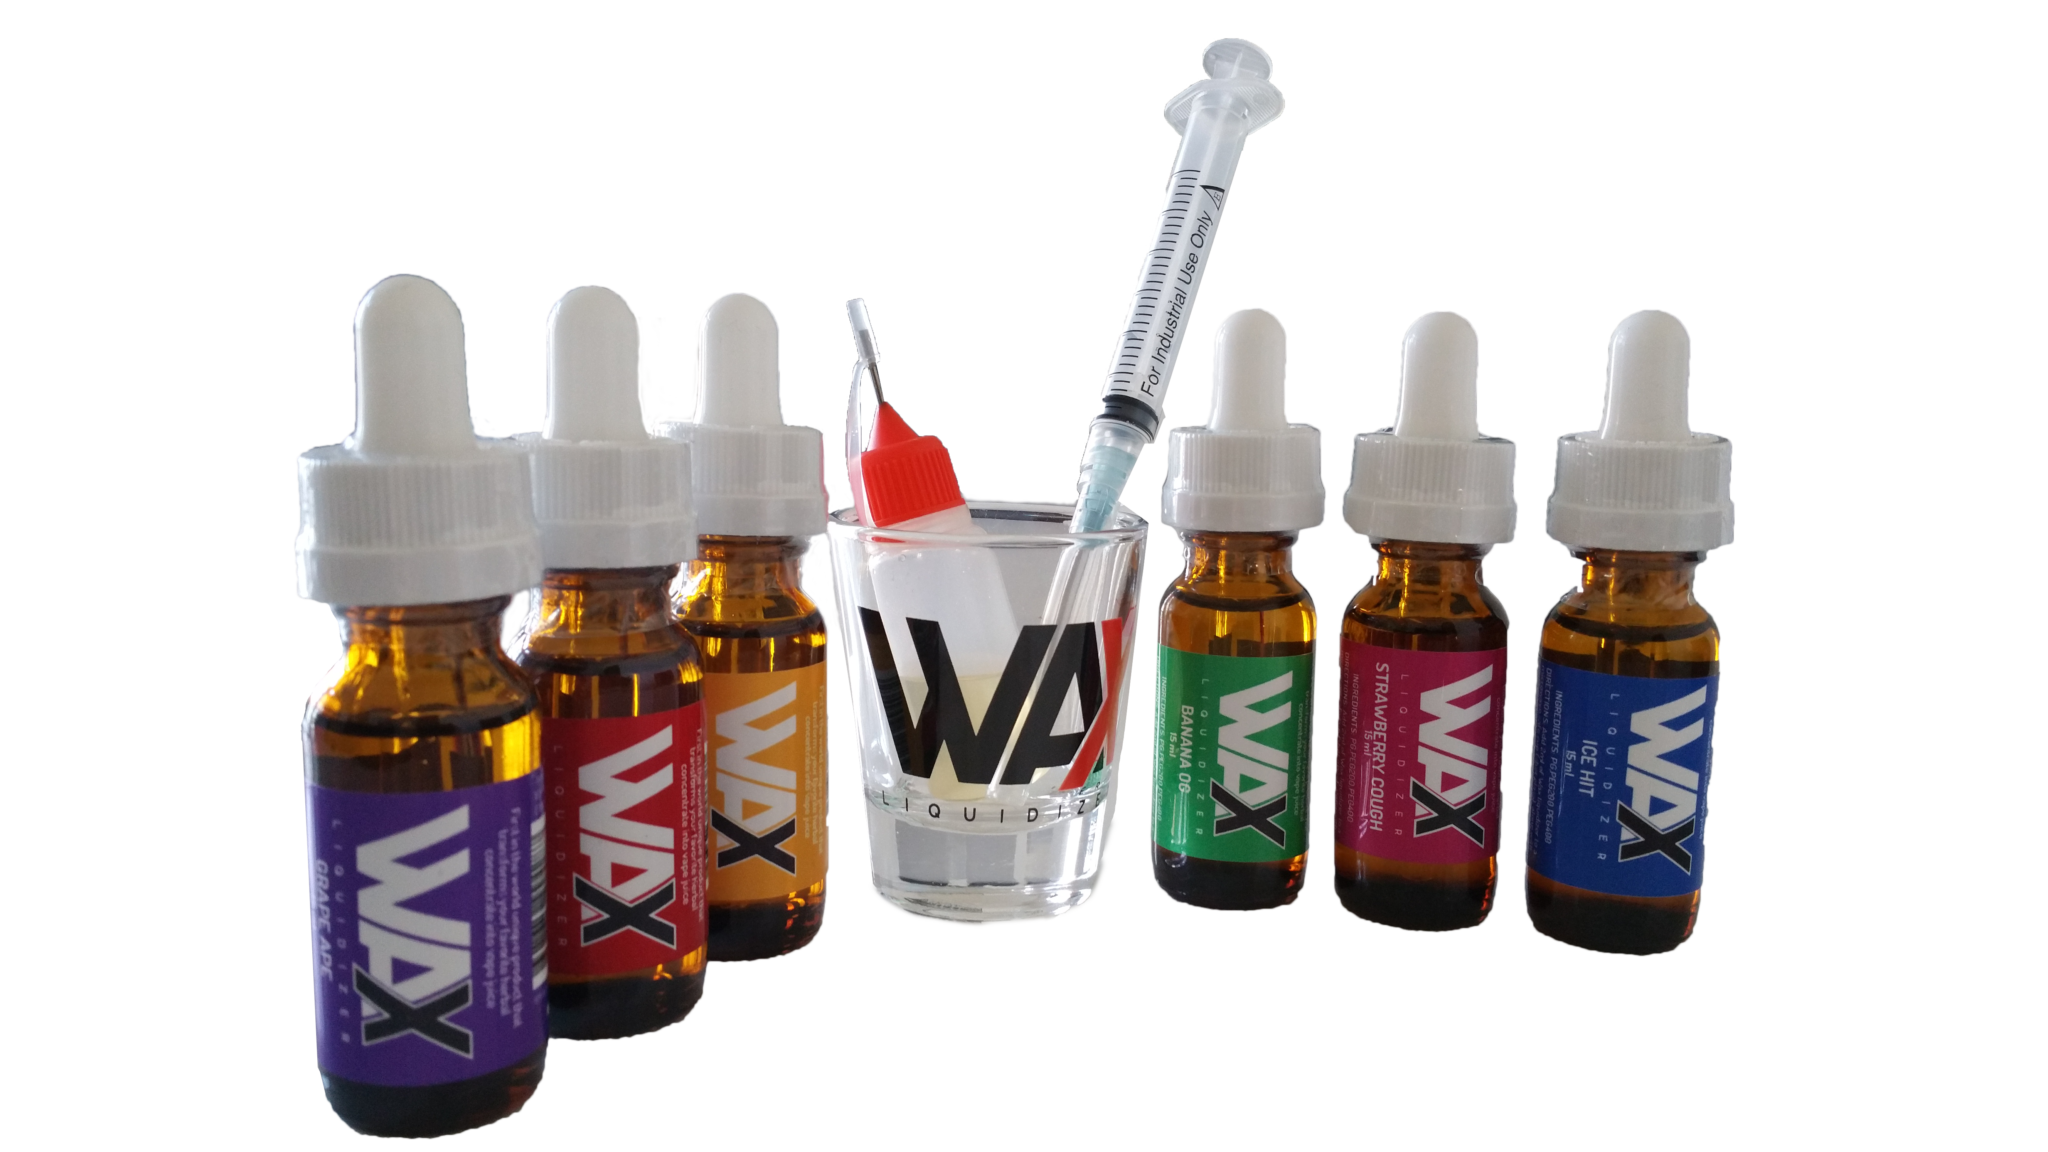 How to Make THC into E Juice With Wax - Fast & Easy